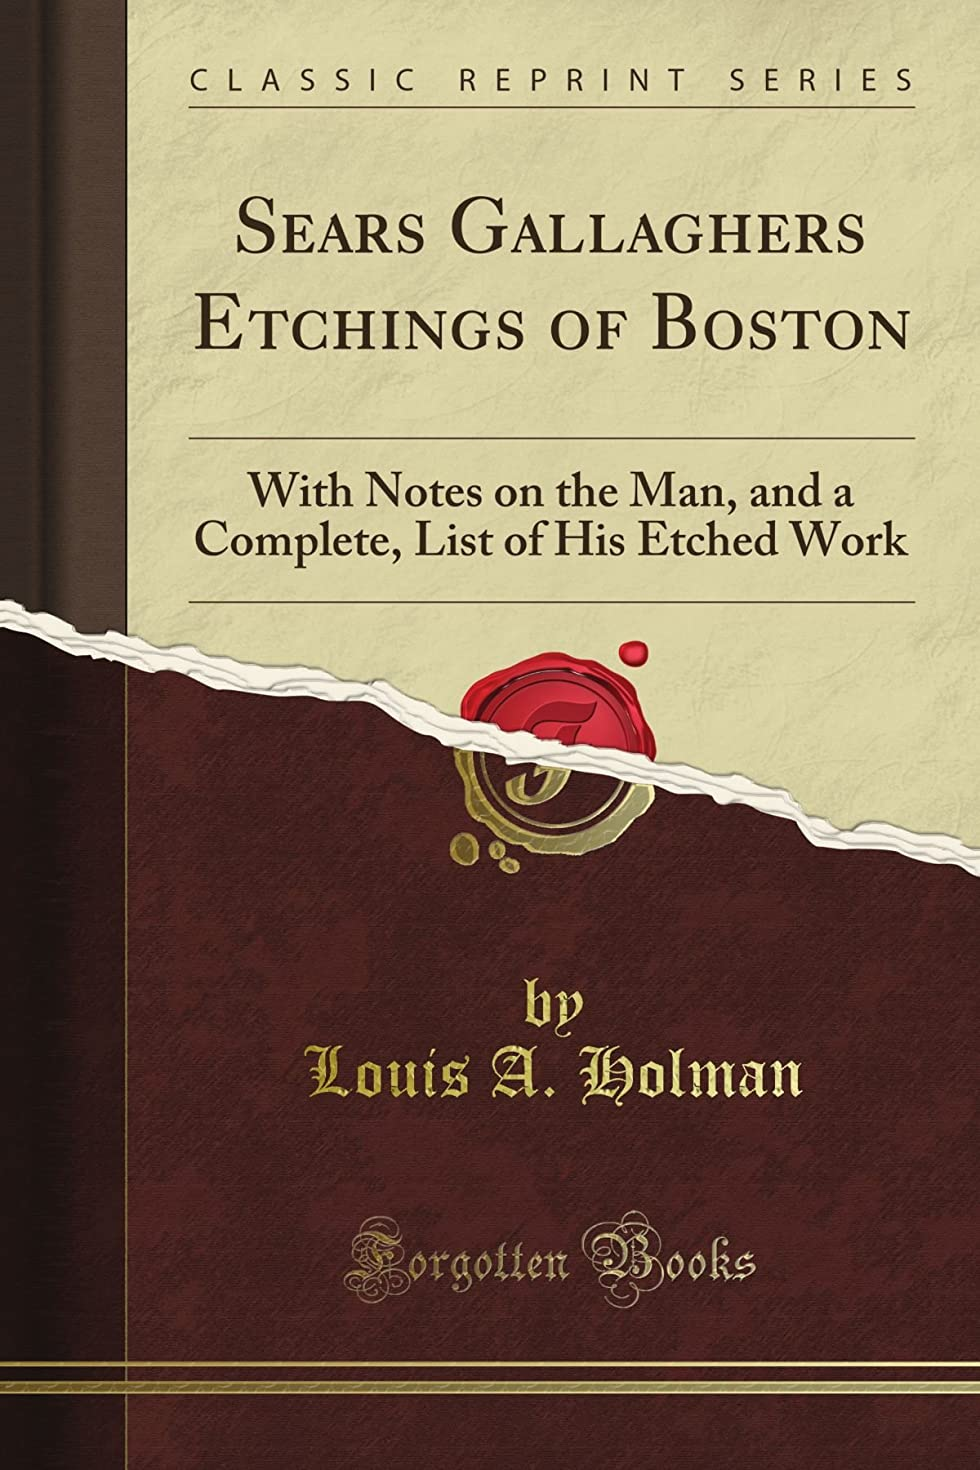 冷酷な条件付きパーツSears Gallagher's Etchings of Boston: With Notes on the Man, and a Complete, List of His Etched Work (Classic Reprint)